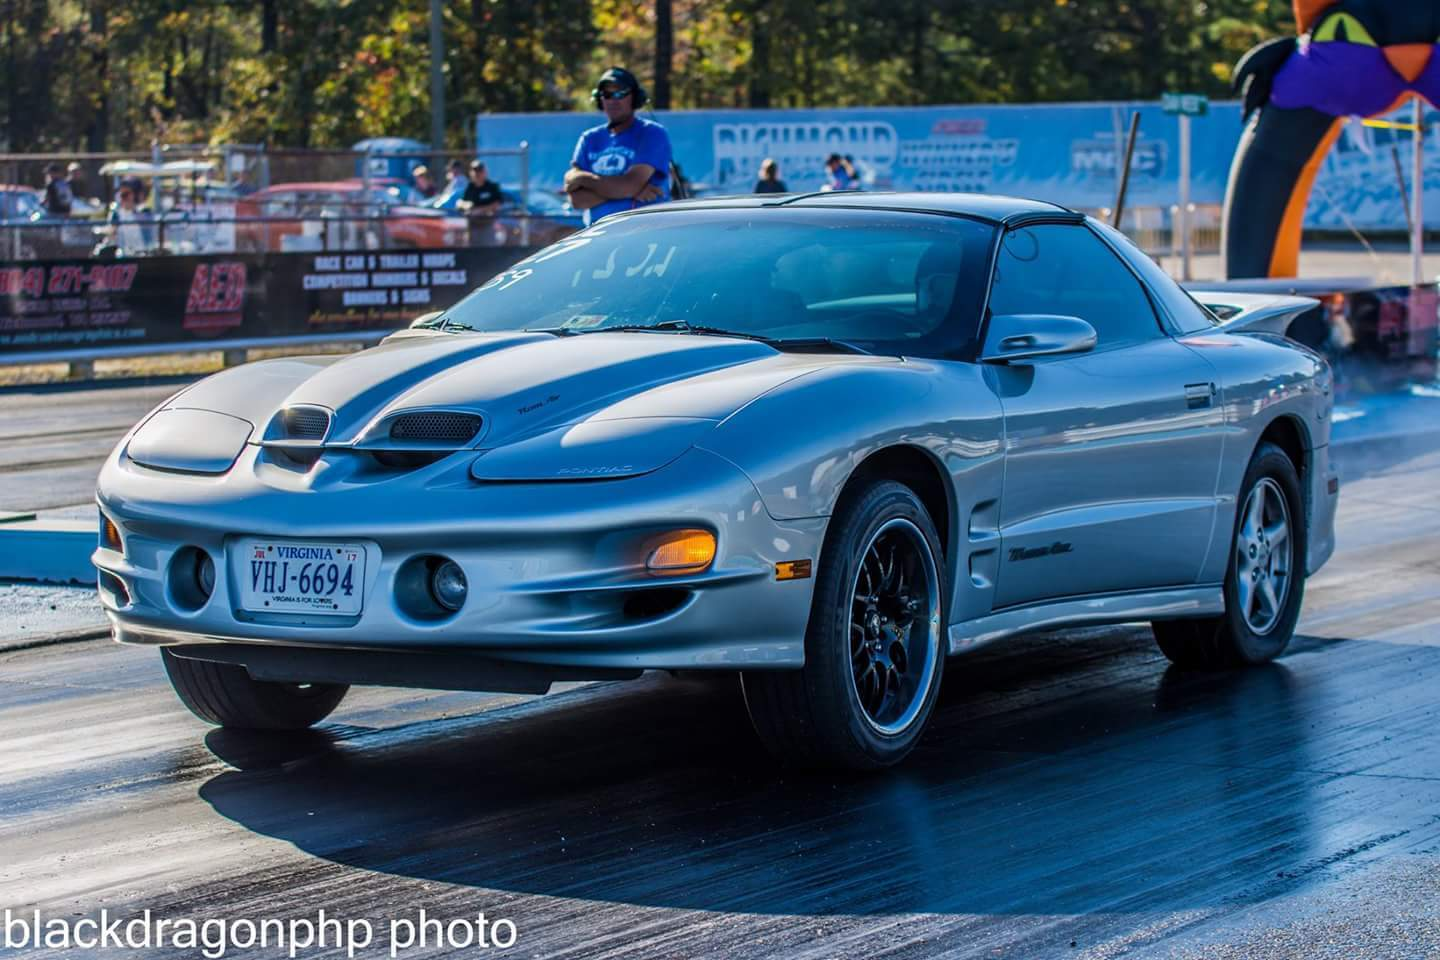 2000 Silver Pontiac Trans Am WS6 picture, mods, upgrades